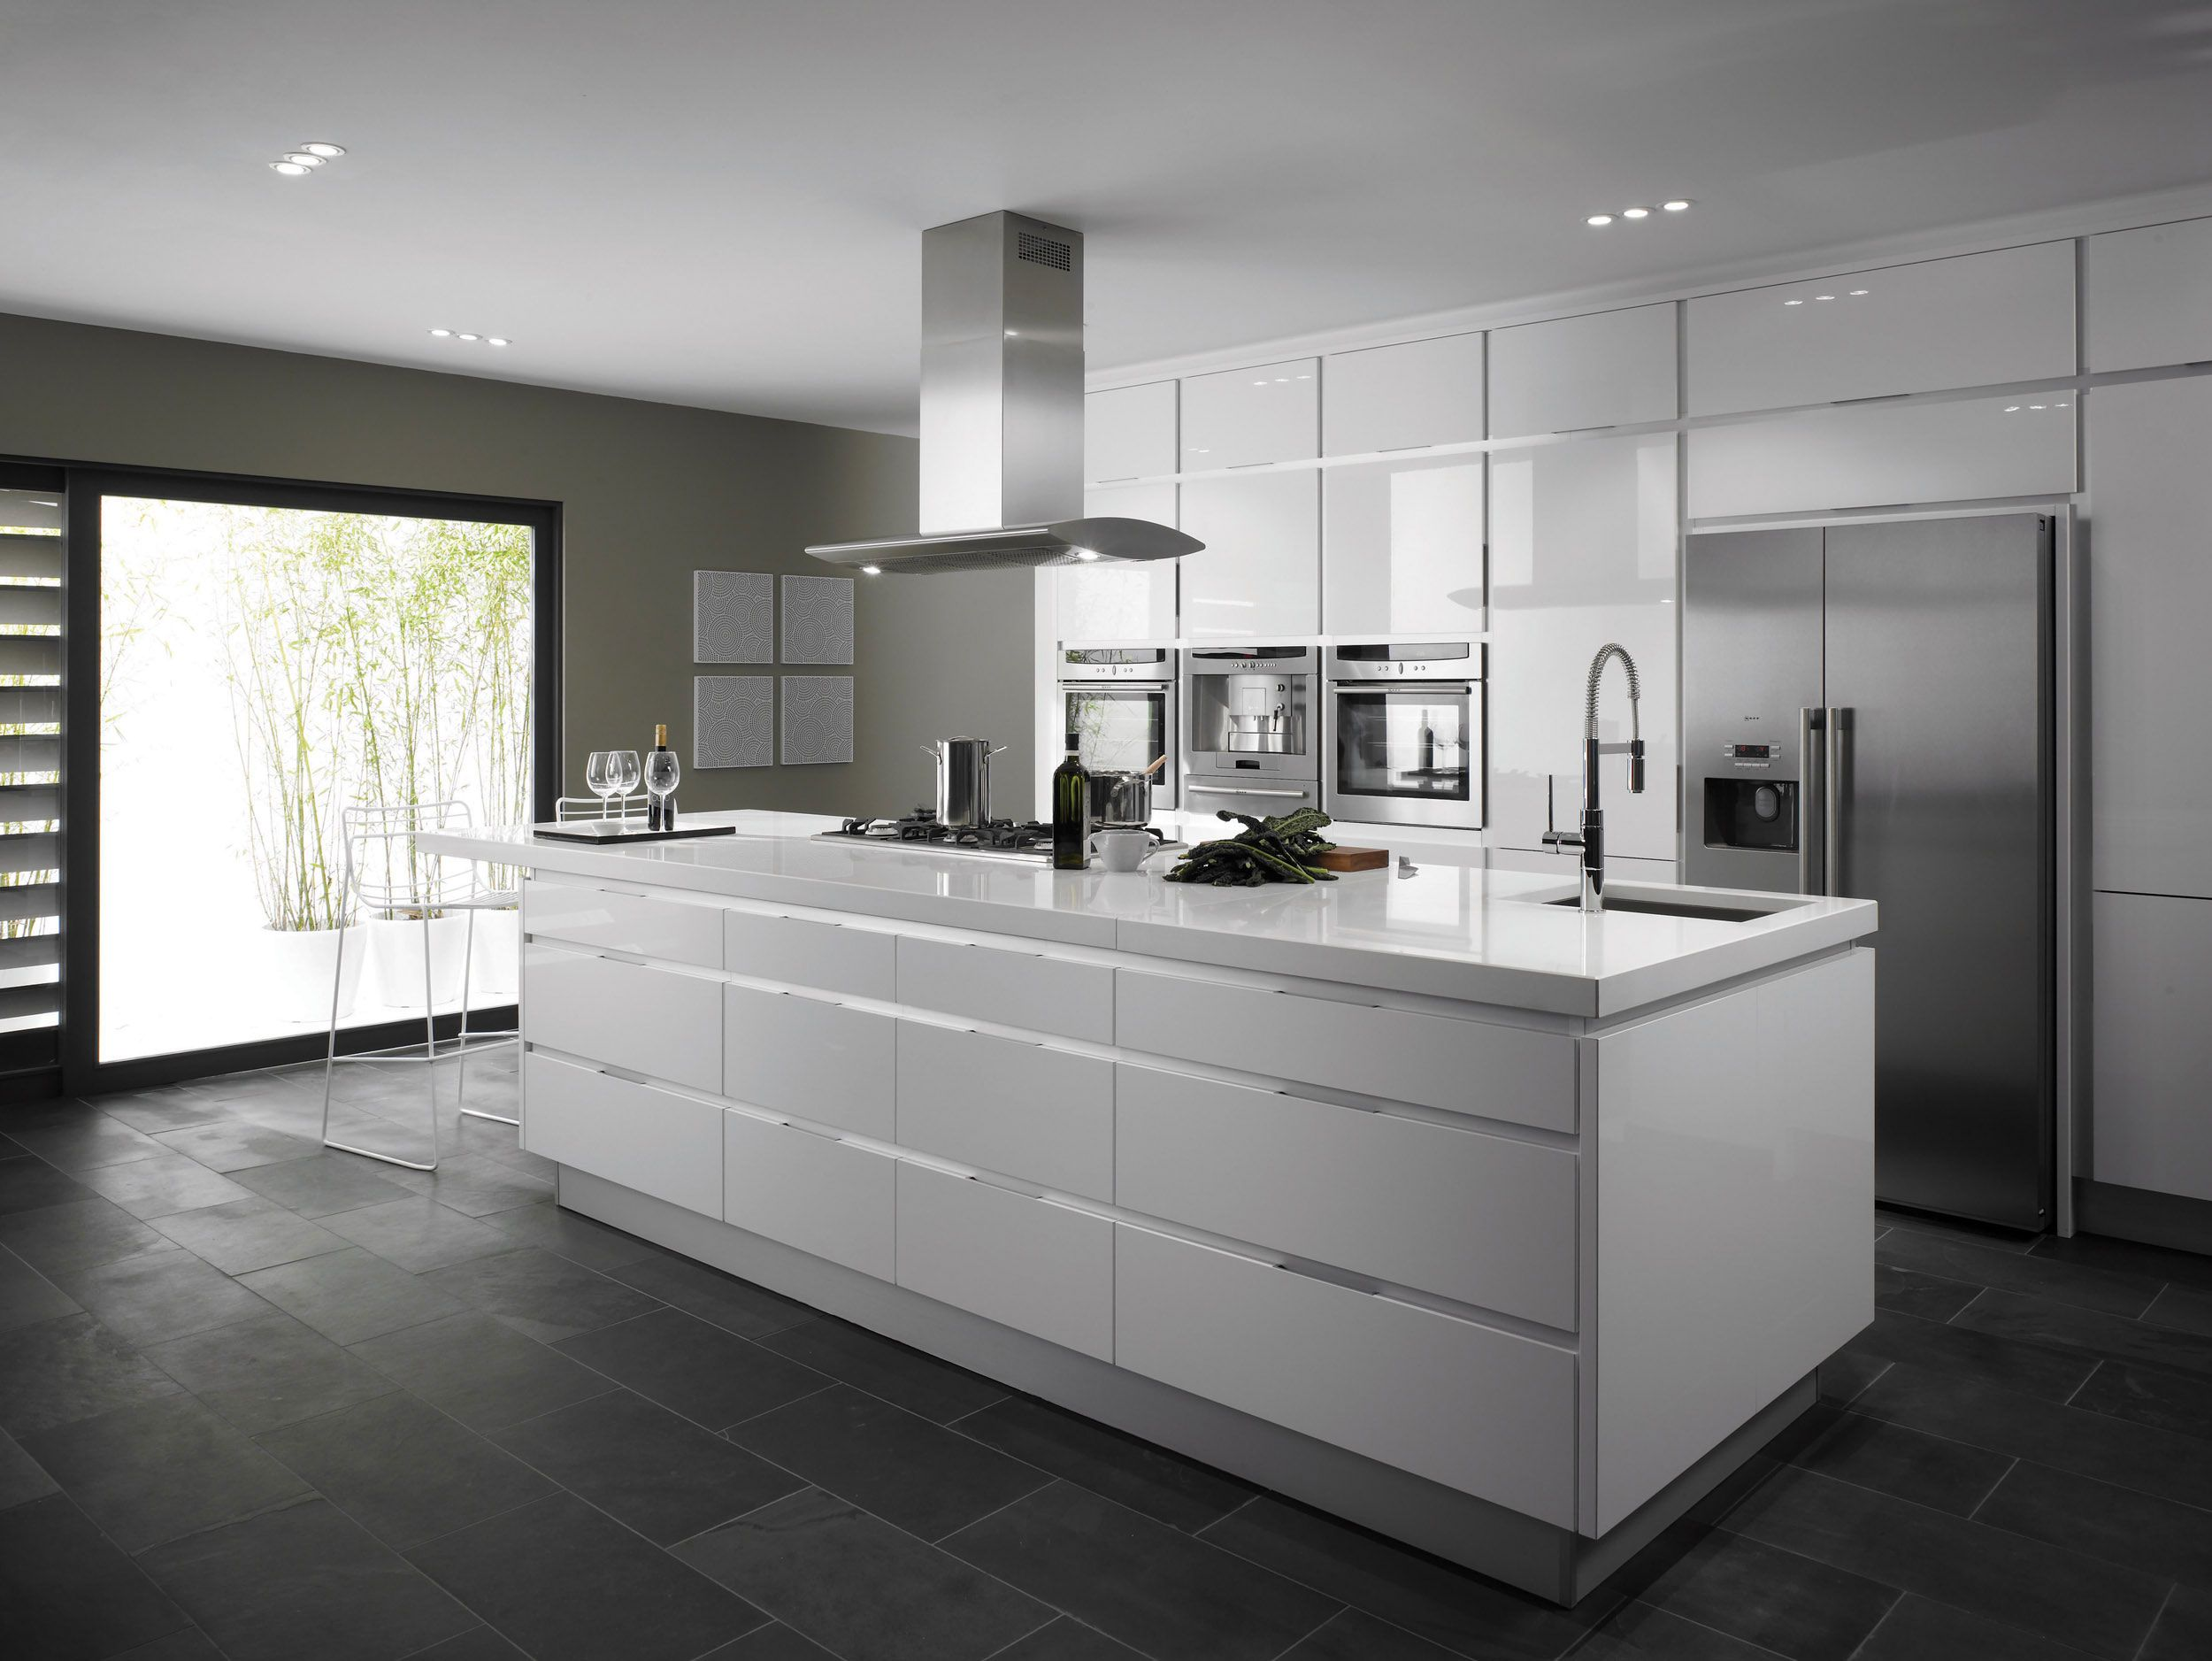 Modern White Kitchen Images 100  White Kitchen Cabinets With Black Island   Elegant White